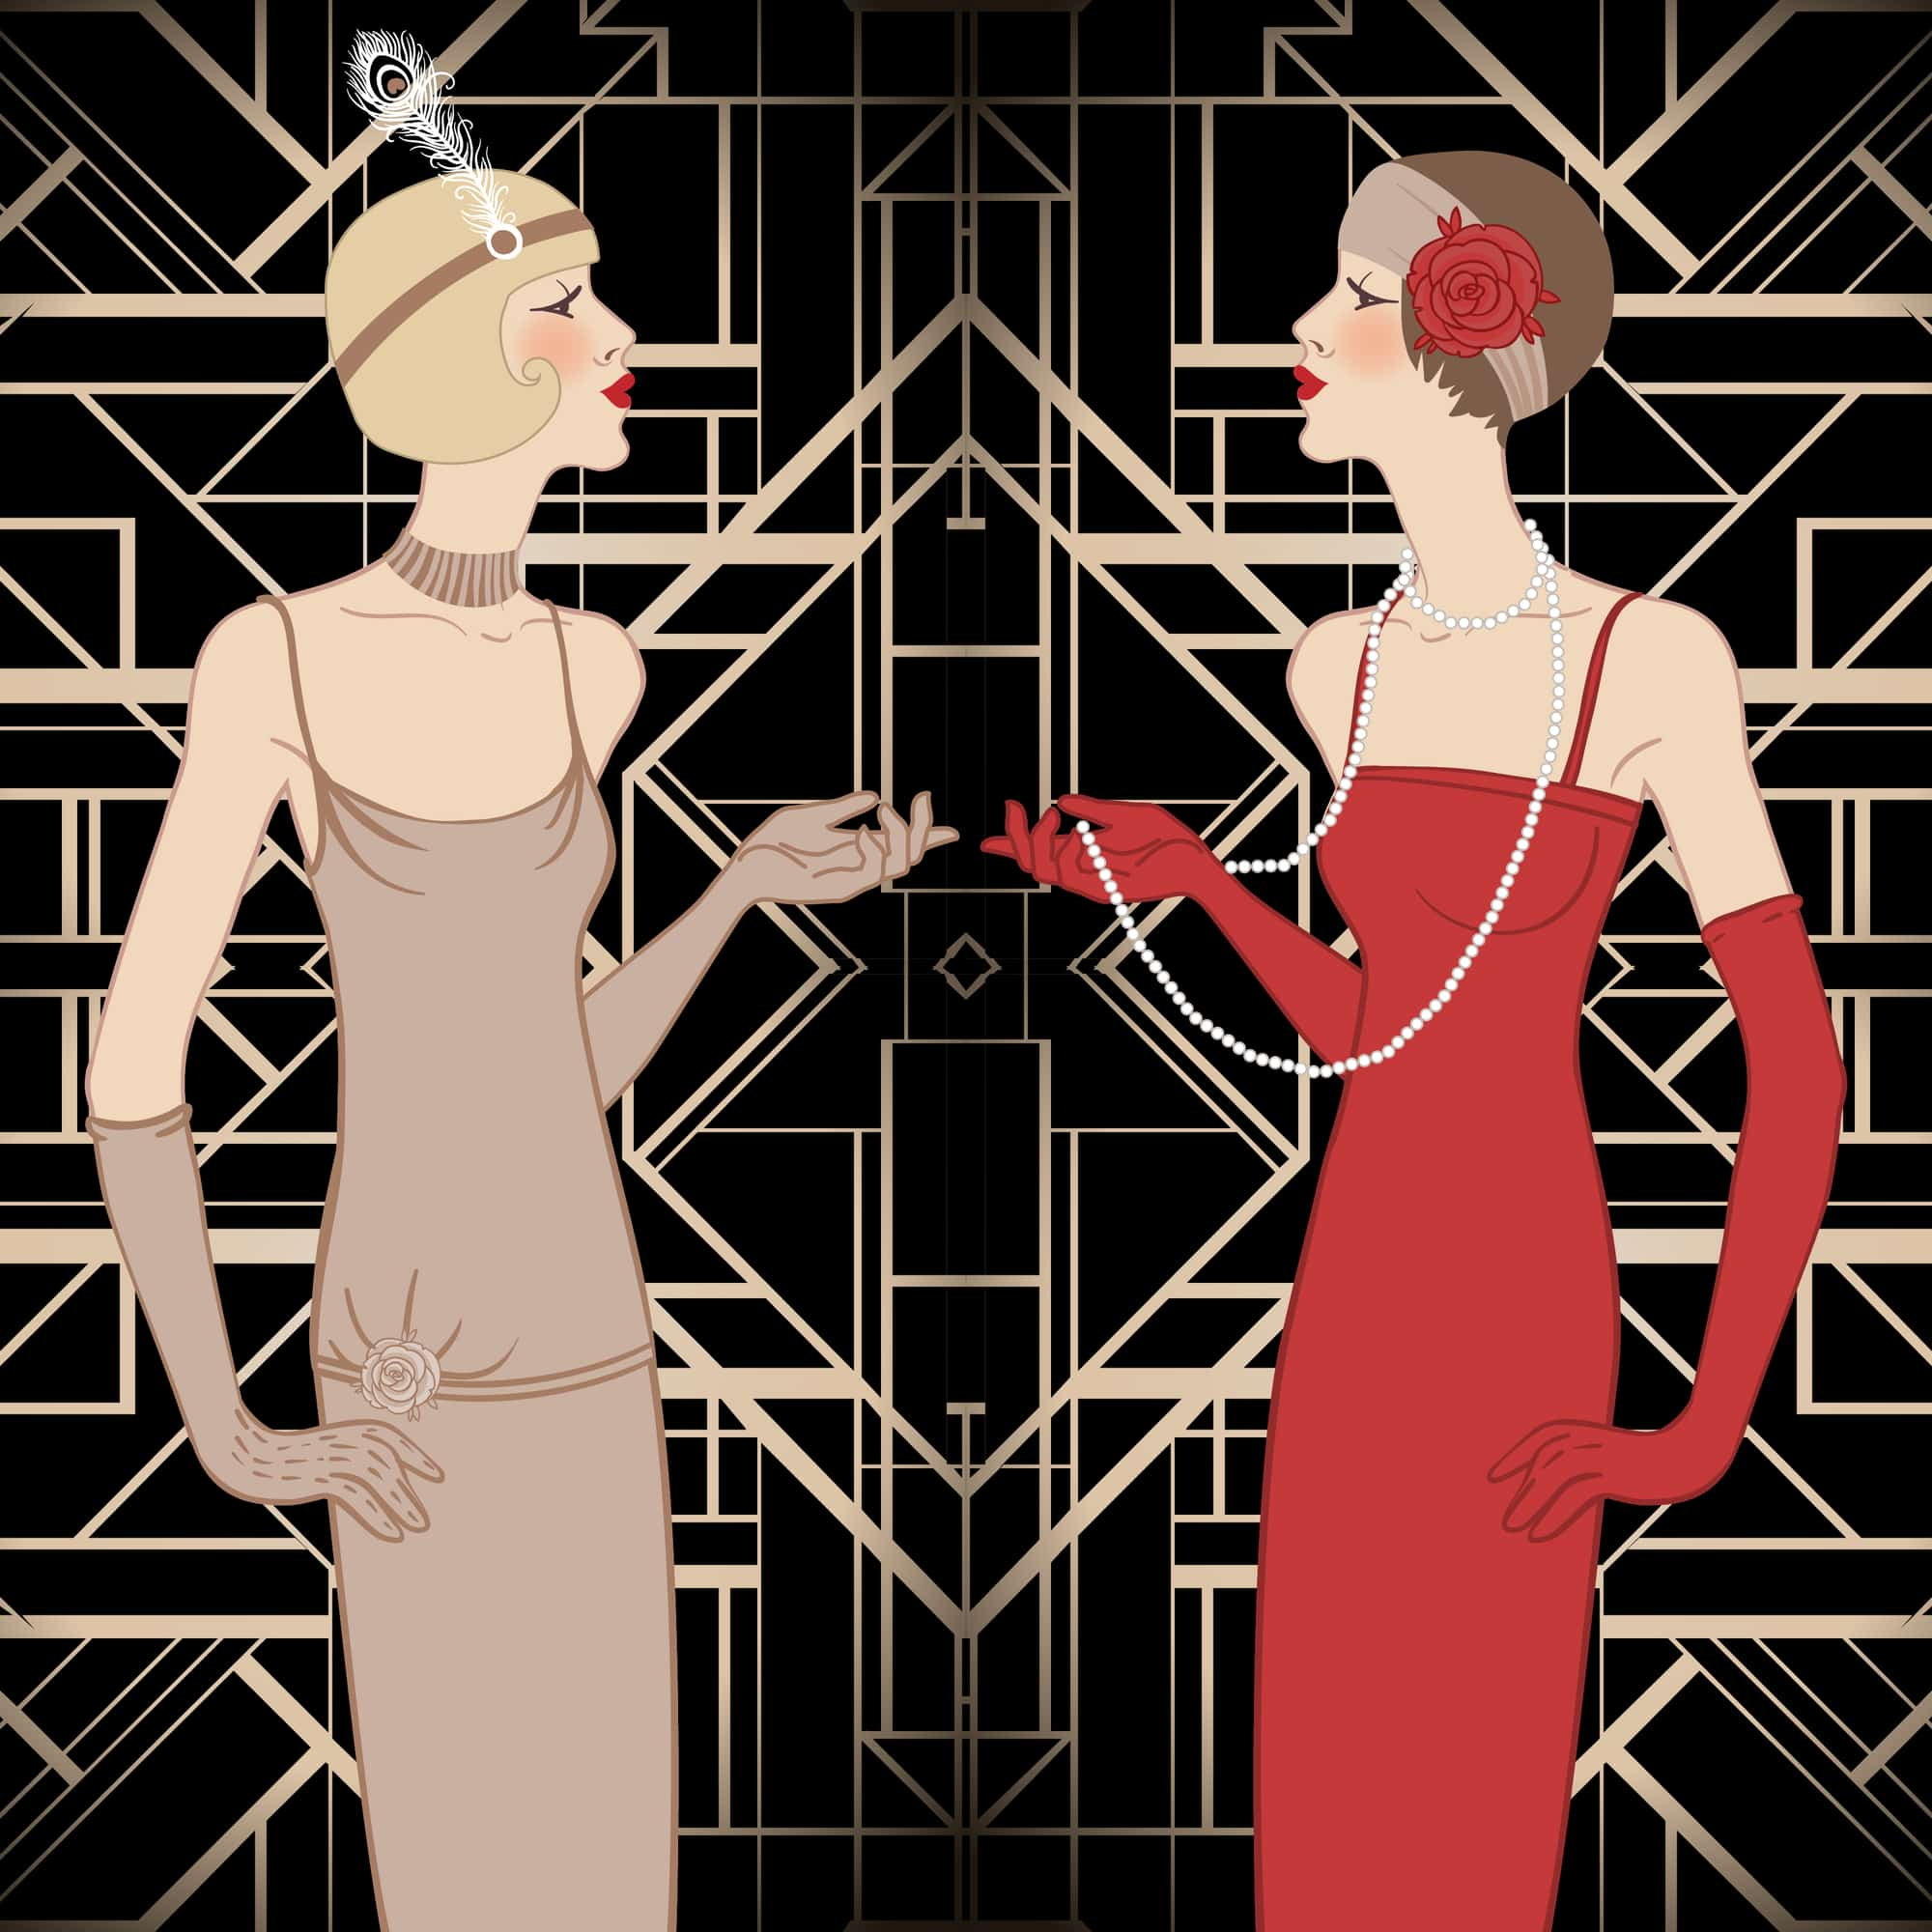 Myrtle and Daisy from The Great Gatsby